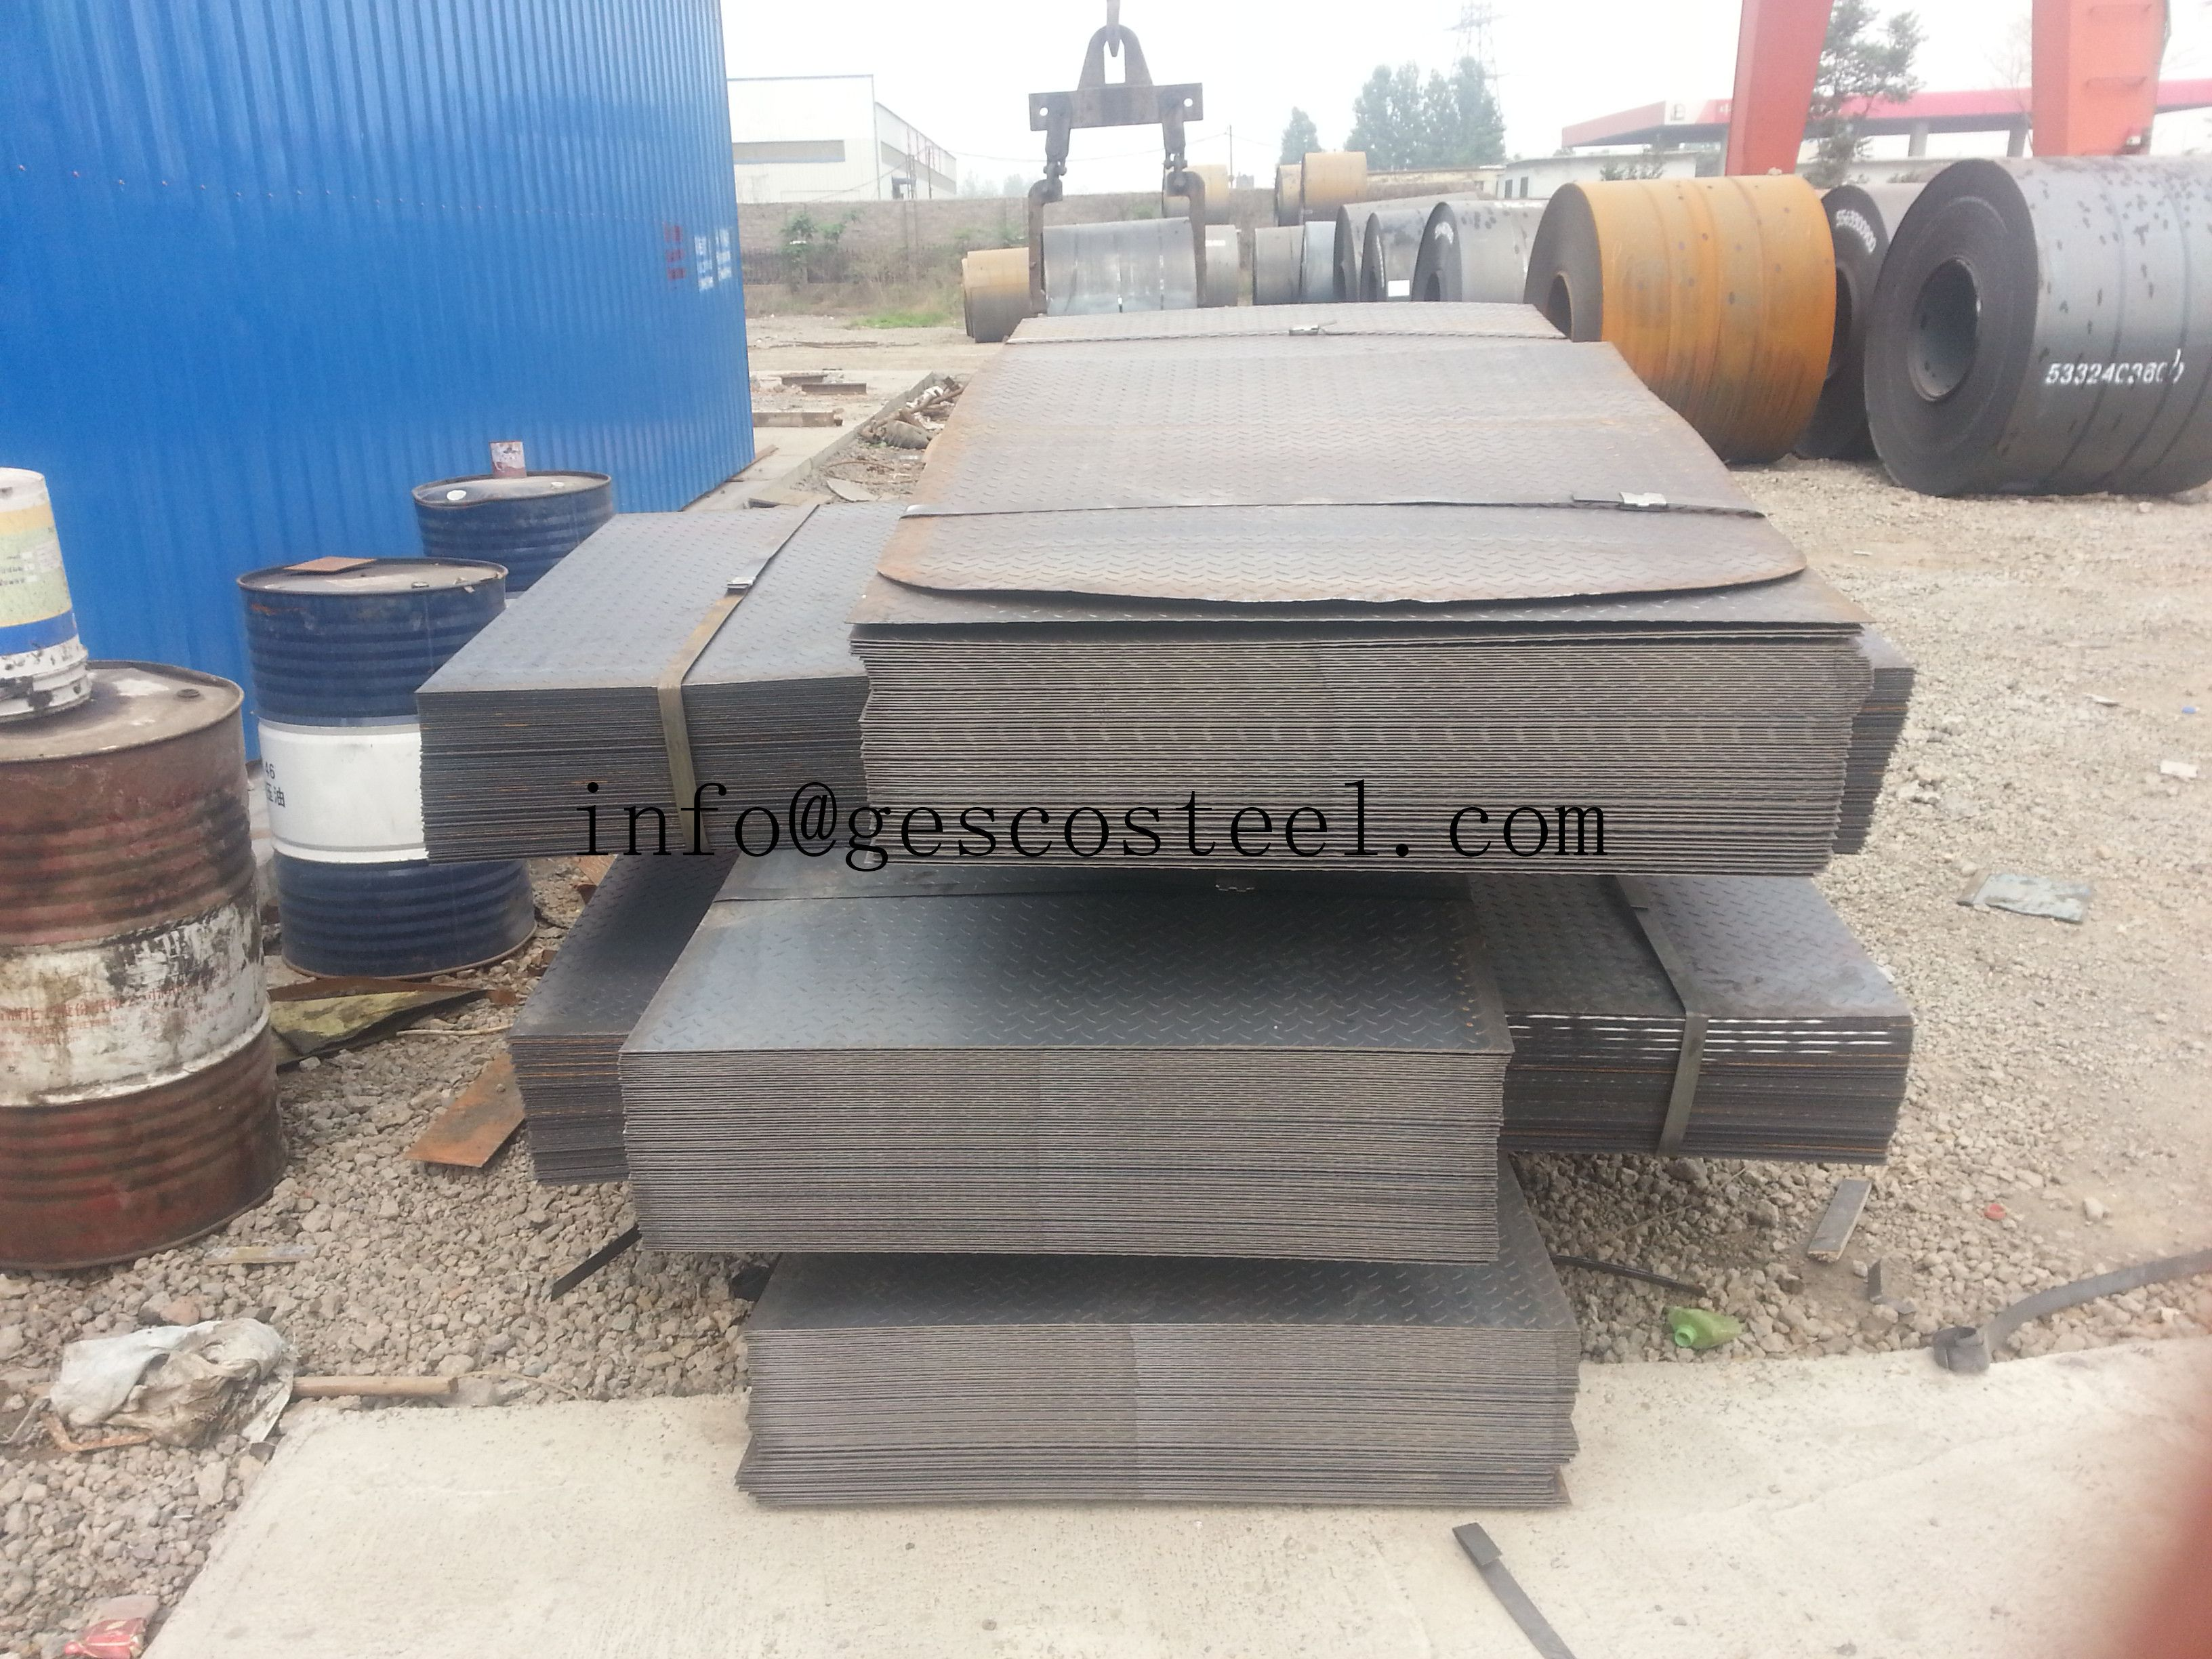 Astm A516 Grade 65 And Asme Sa516 Grade 65 Carbon Steel Plate Astm A516 Grade 60 65 70 Astm A516 Grade 60 A516 Steel Weathering Steel Steel Plate Steel Sheet